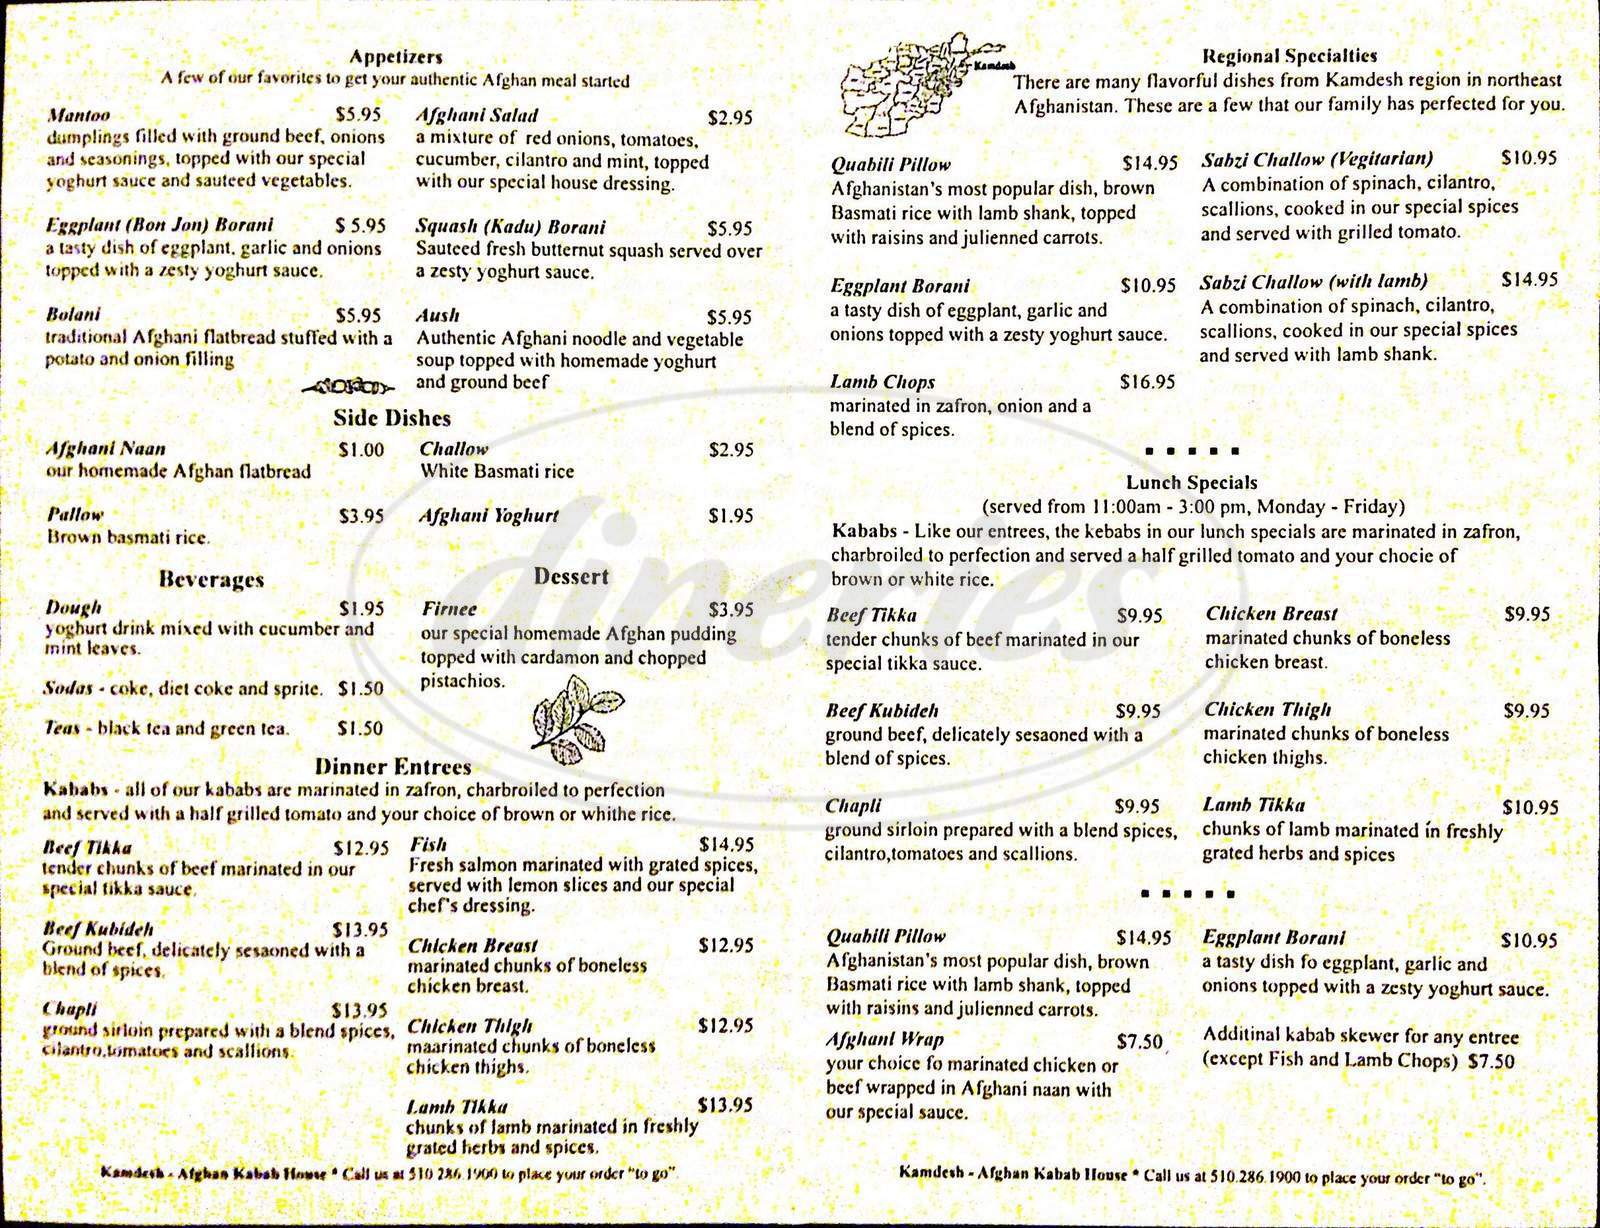 menu for Kamdesh Afghan Kabab House